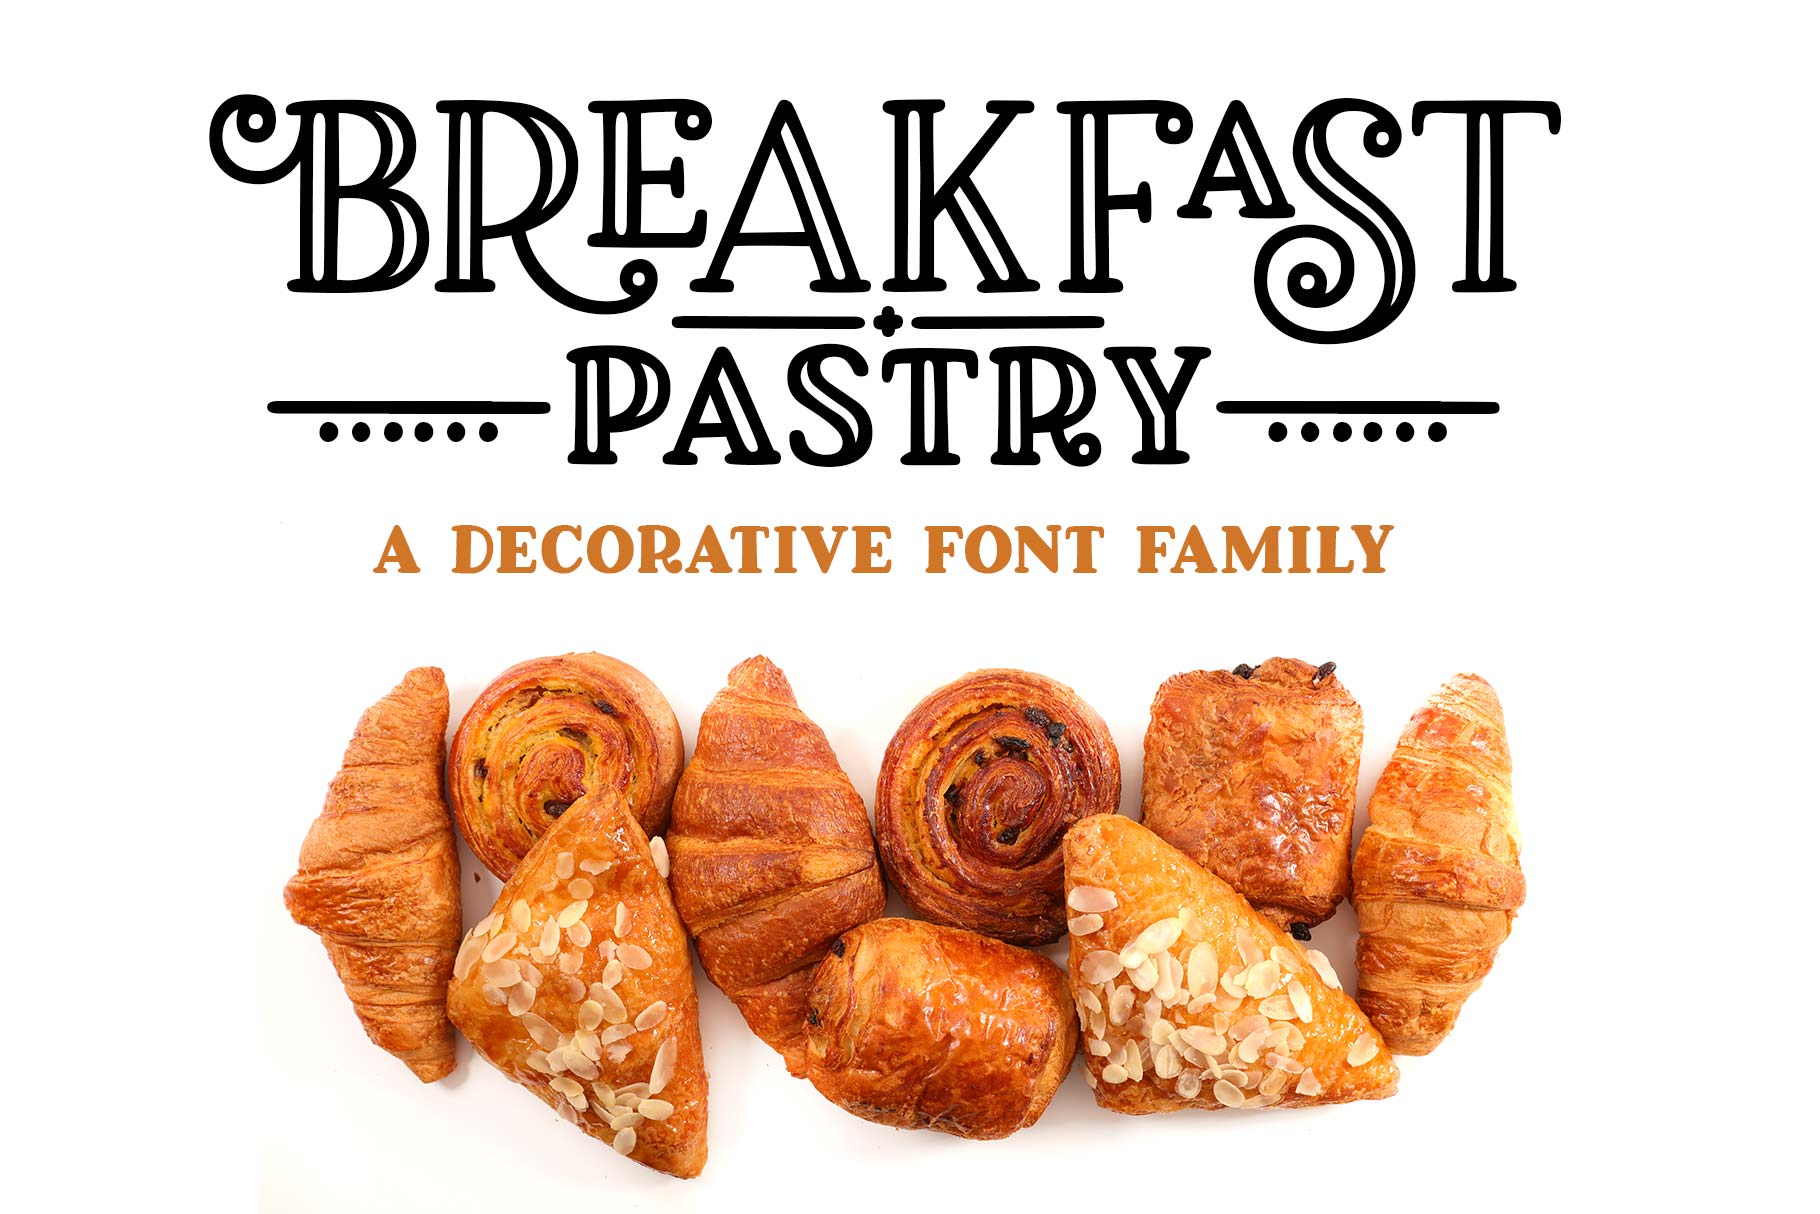 Breakfast Pastry: a decorative font family! example image 1